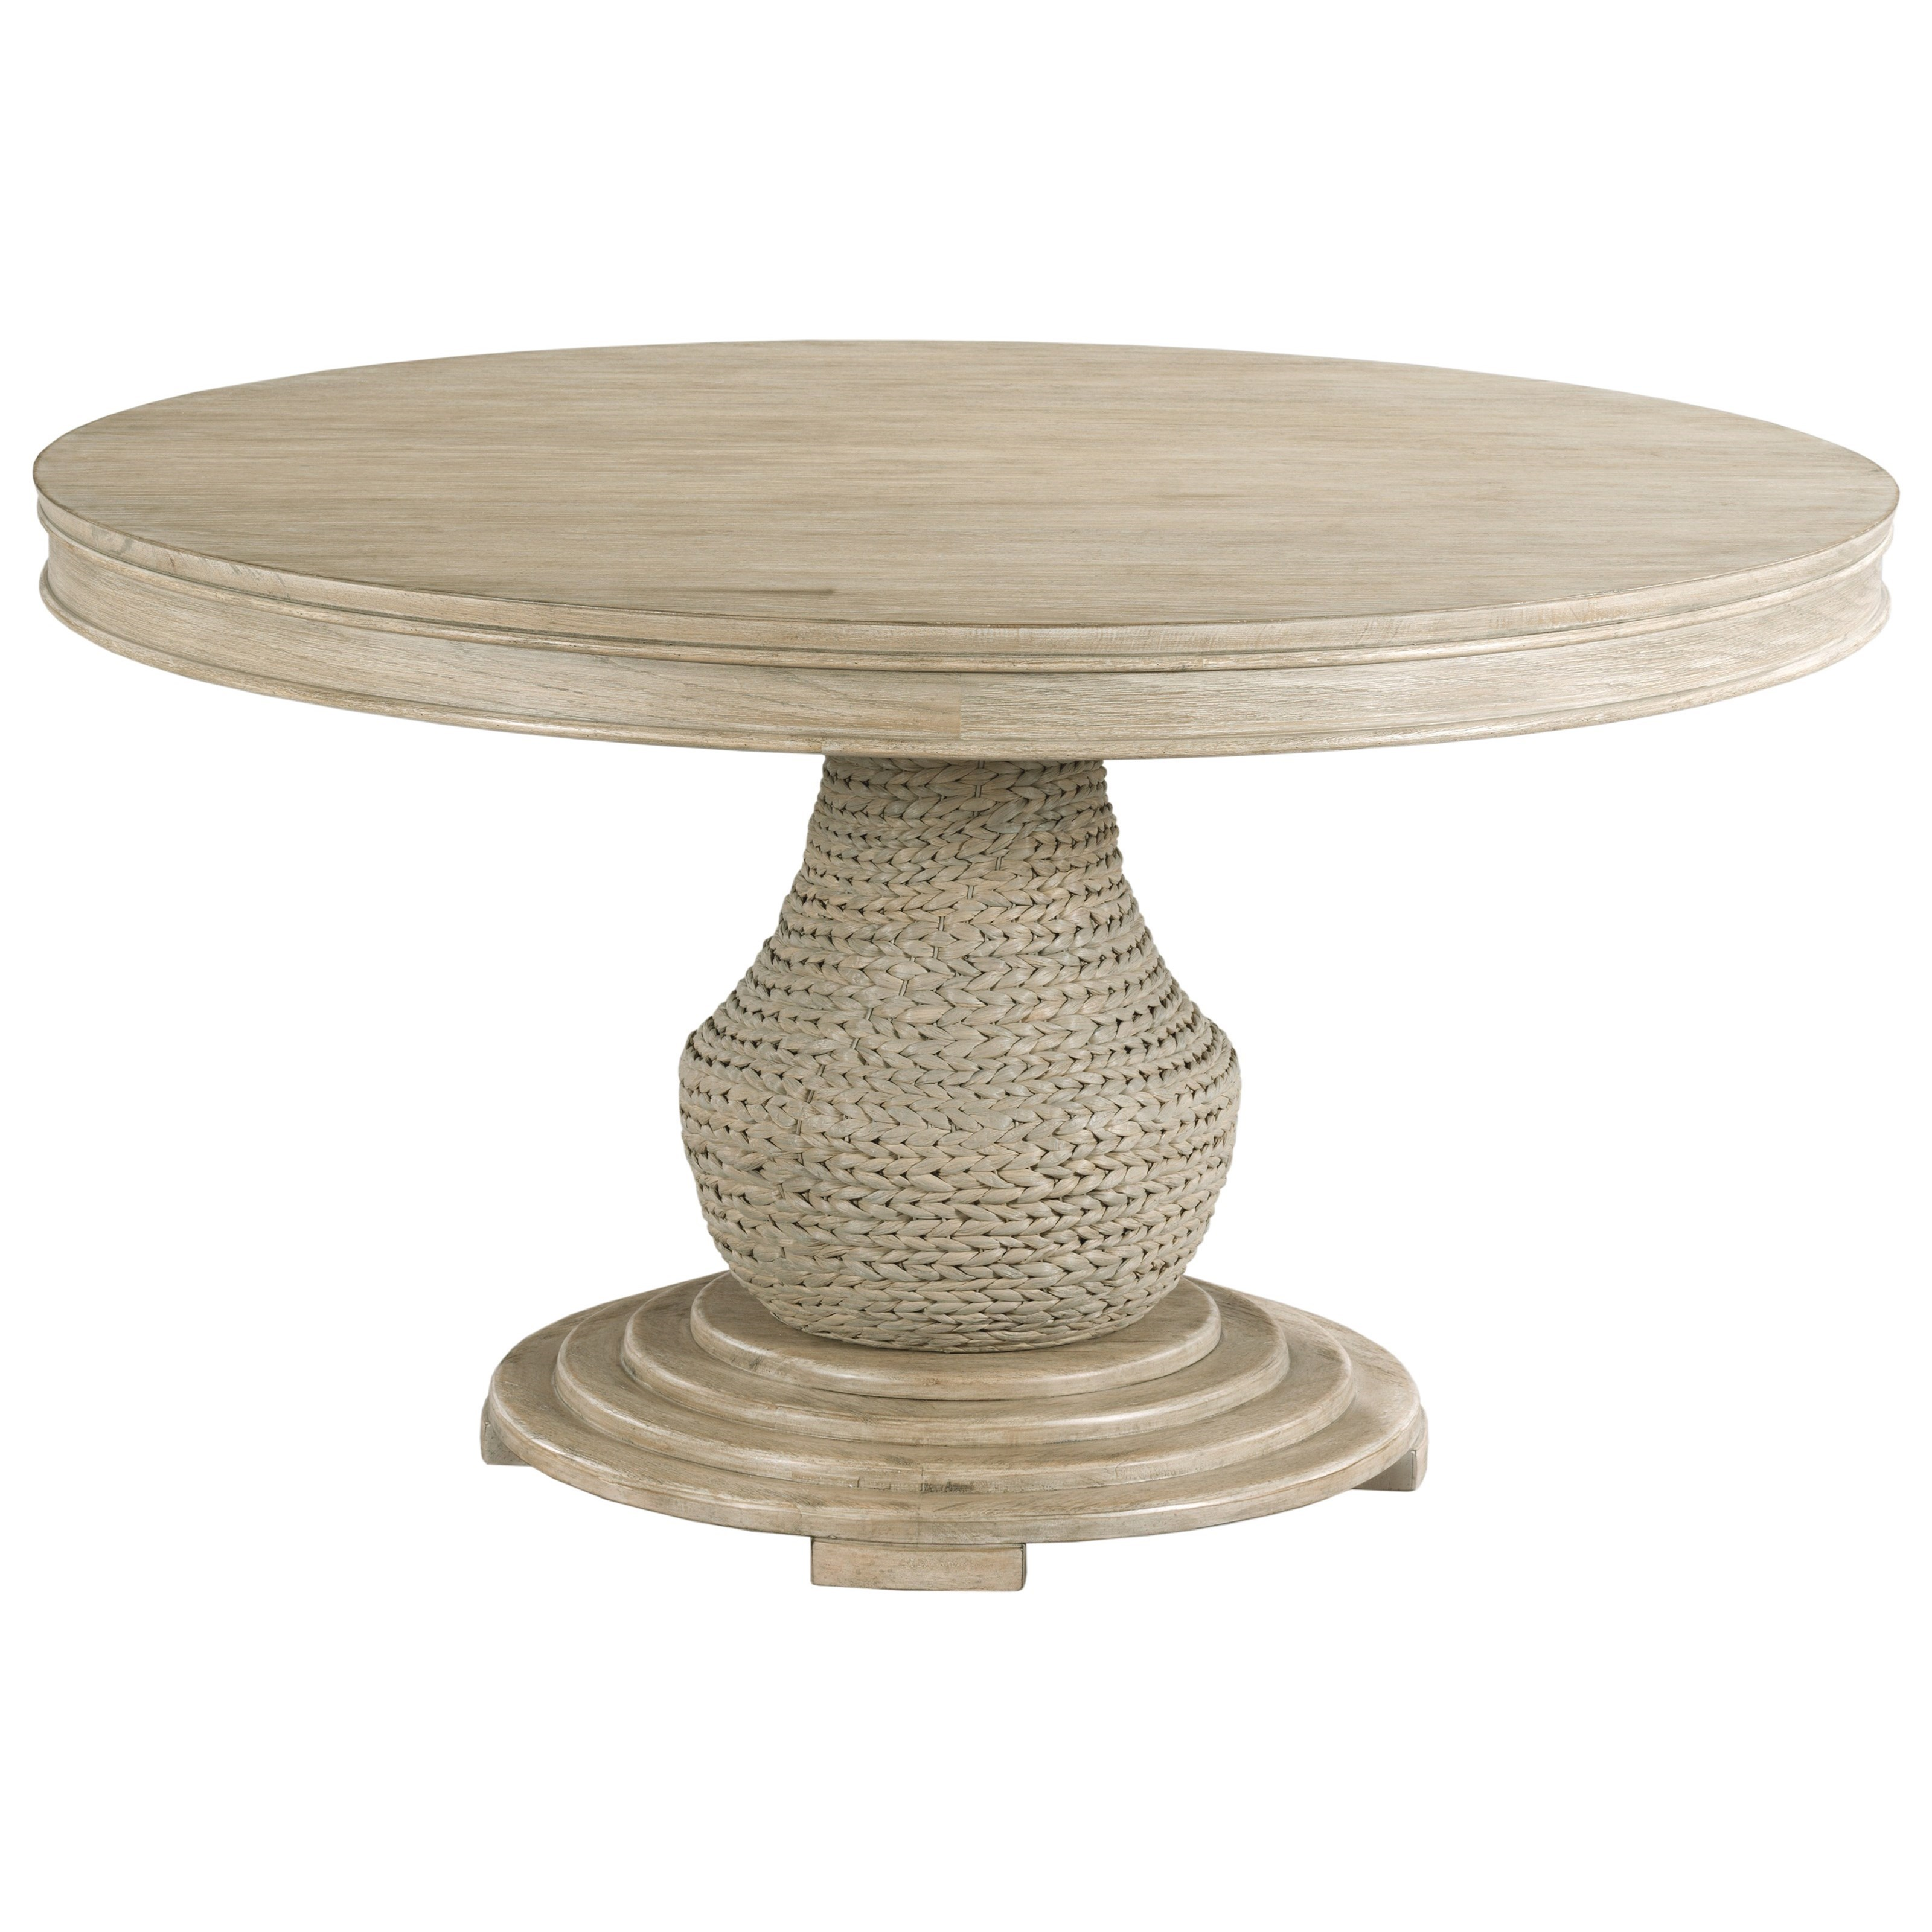 Vista Largo Round Dining Table Complete by American Drew at Johnny Janosik